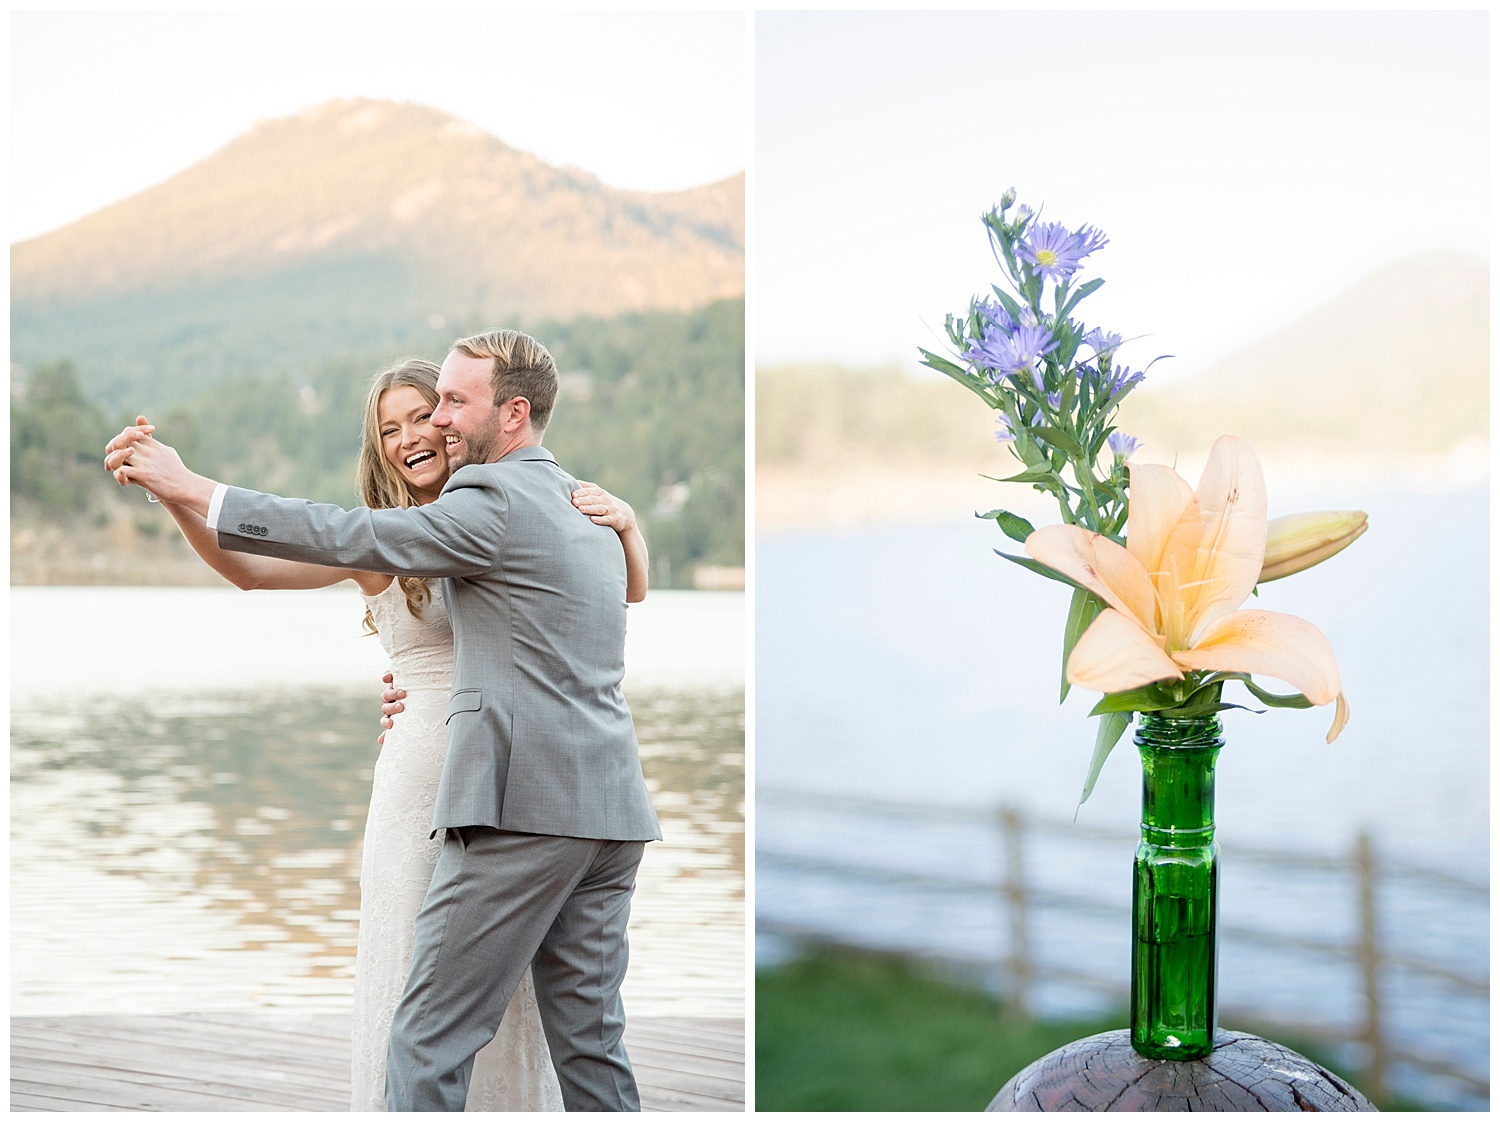 Farm_Wedding_Photographer_Evergreen_Lake_House_Colorado_Barn_Destination_Hawaii_Photography_Mountain_Weddings_034.jpg